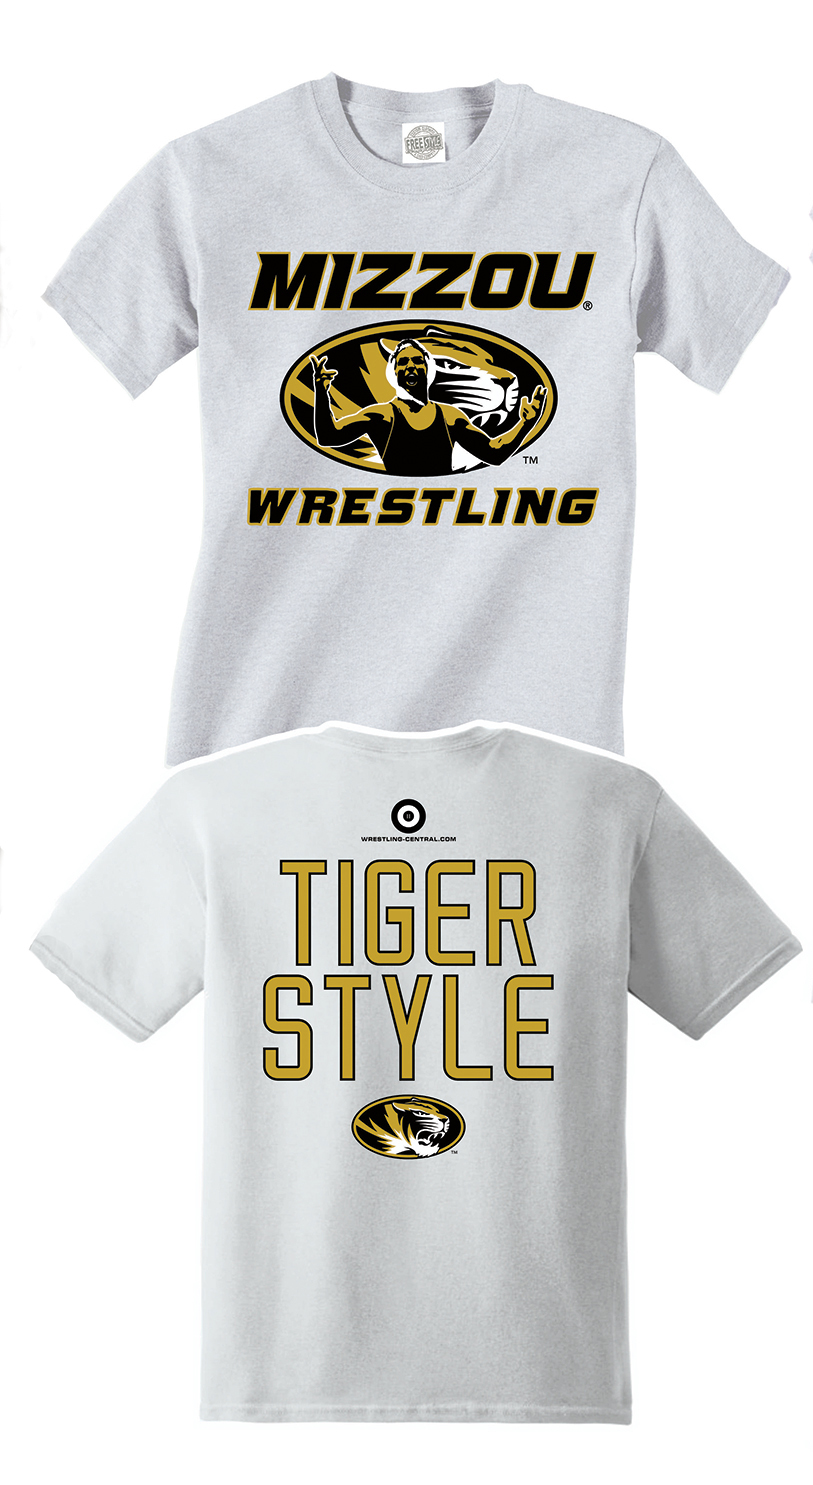 NCAA MIZZOU Wrestling / Tiger Style S/S T-Shirt, color: White